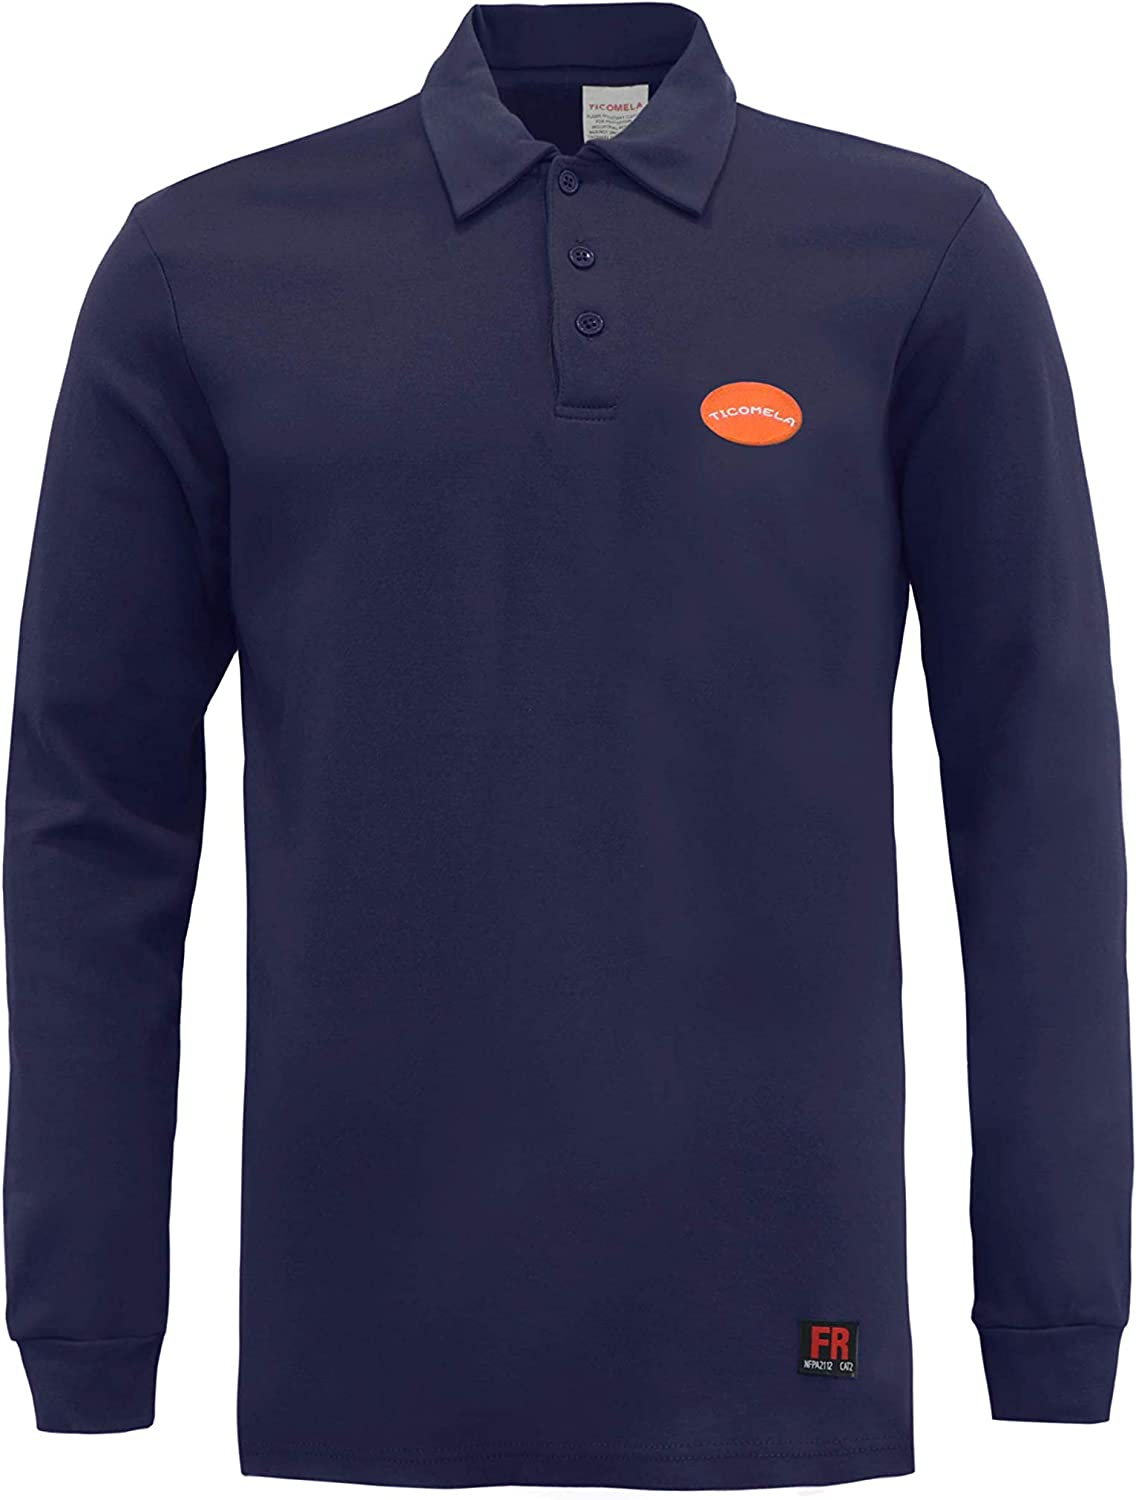 TICOMELA FR Shirts for Men Resistant NFPA2112 A surprise price is realized 7oz Flame F Rapid rise